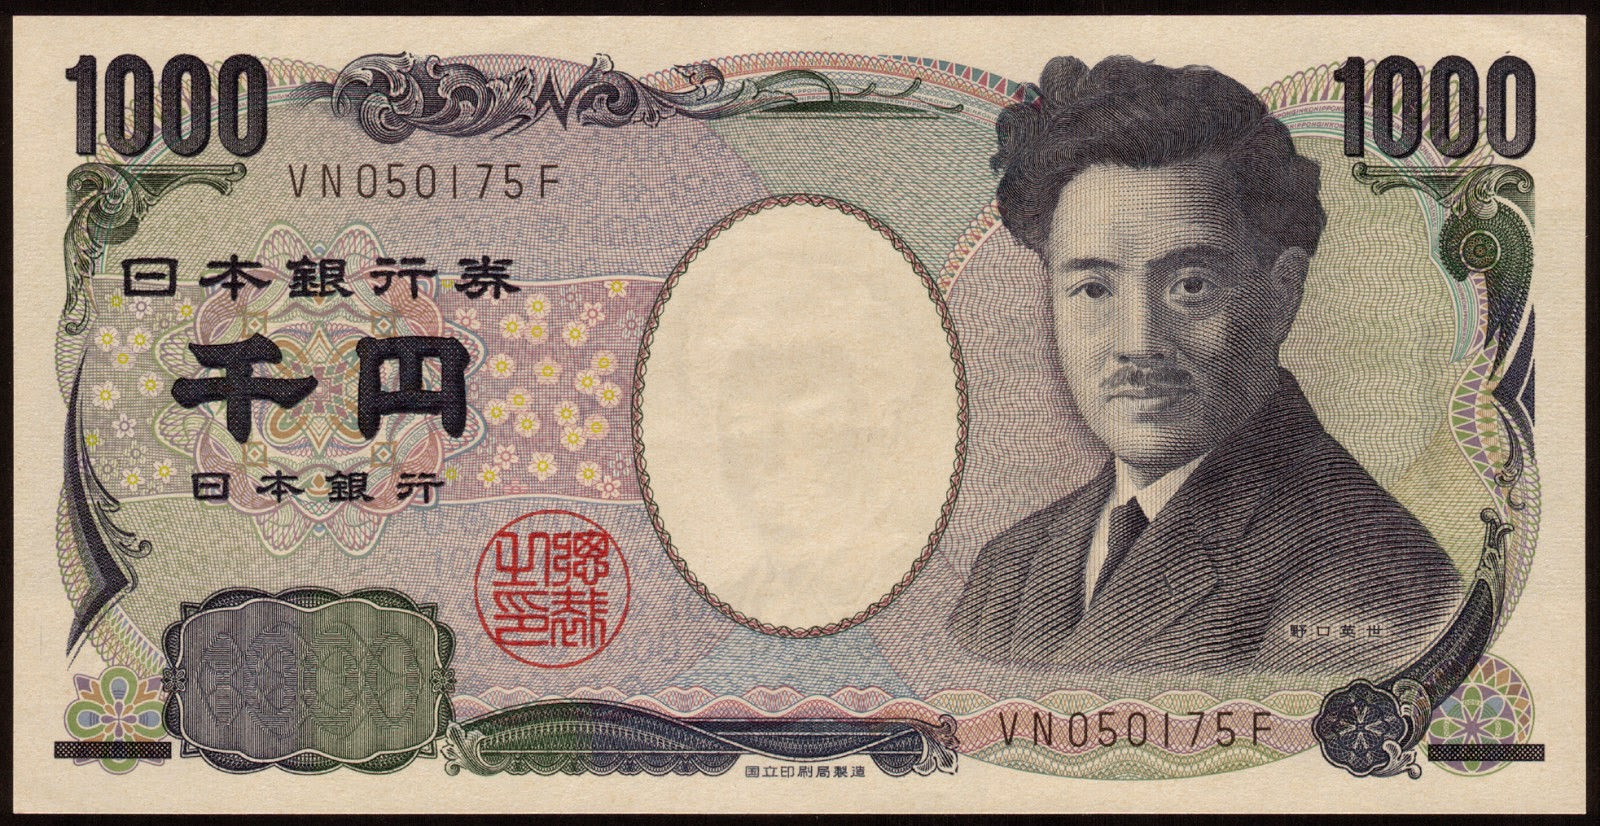 Hidden Symbols Meanings On Currencies Around The World